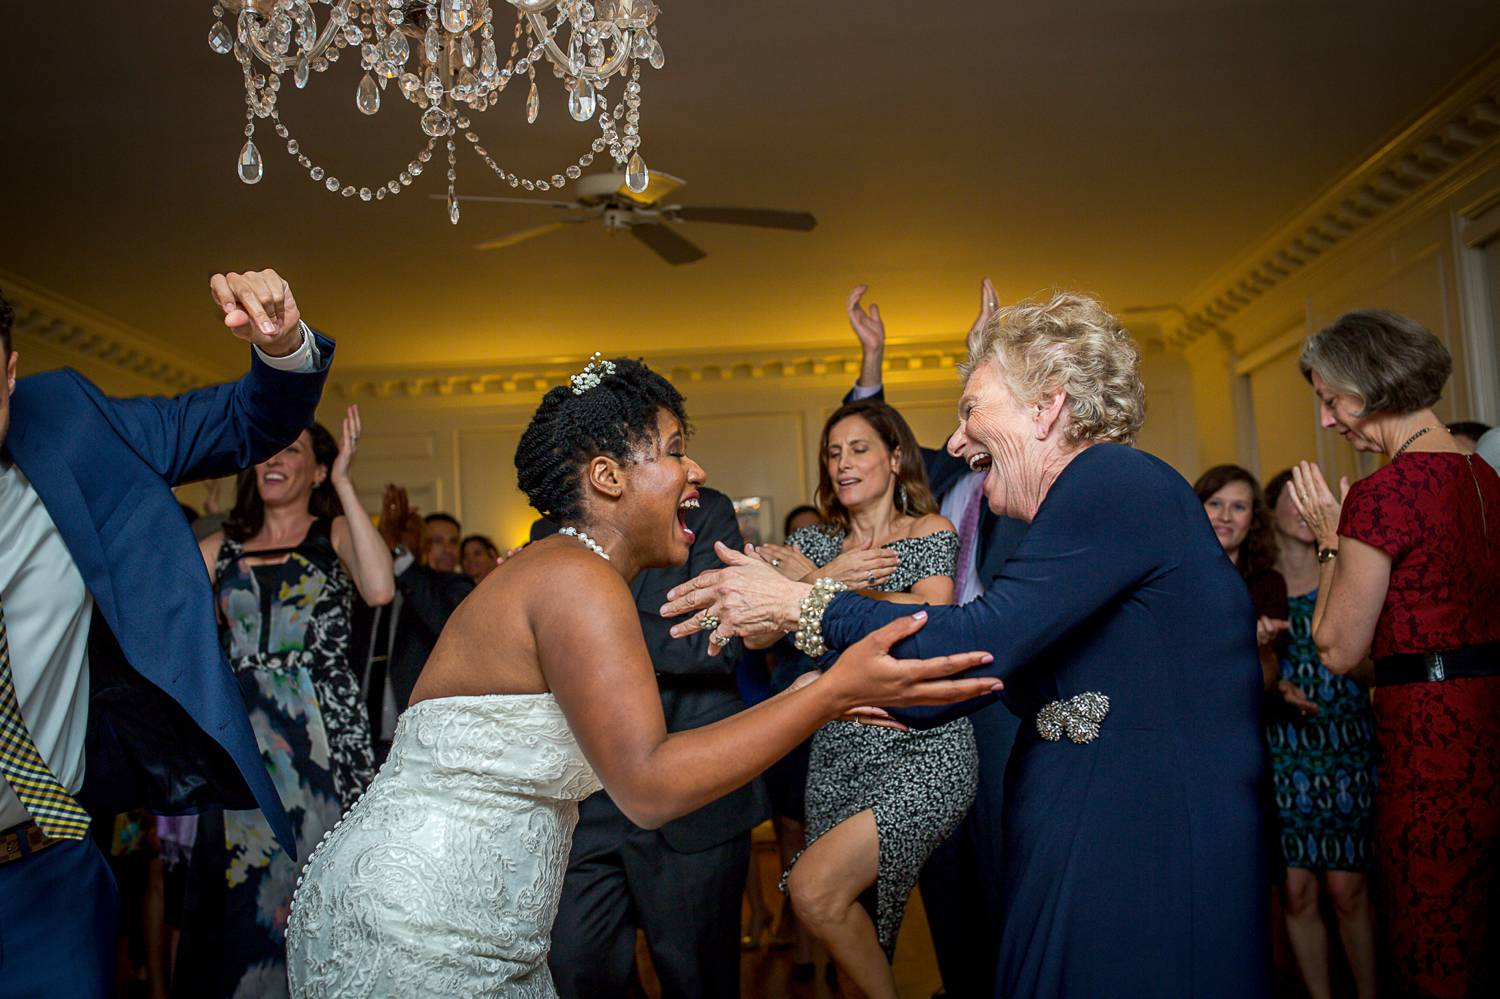 A Black bride and a white grandmother smile joyously as they reach toward eachother across a crowded dance floor